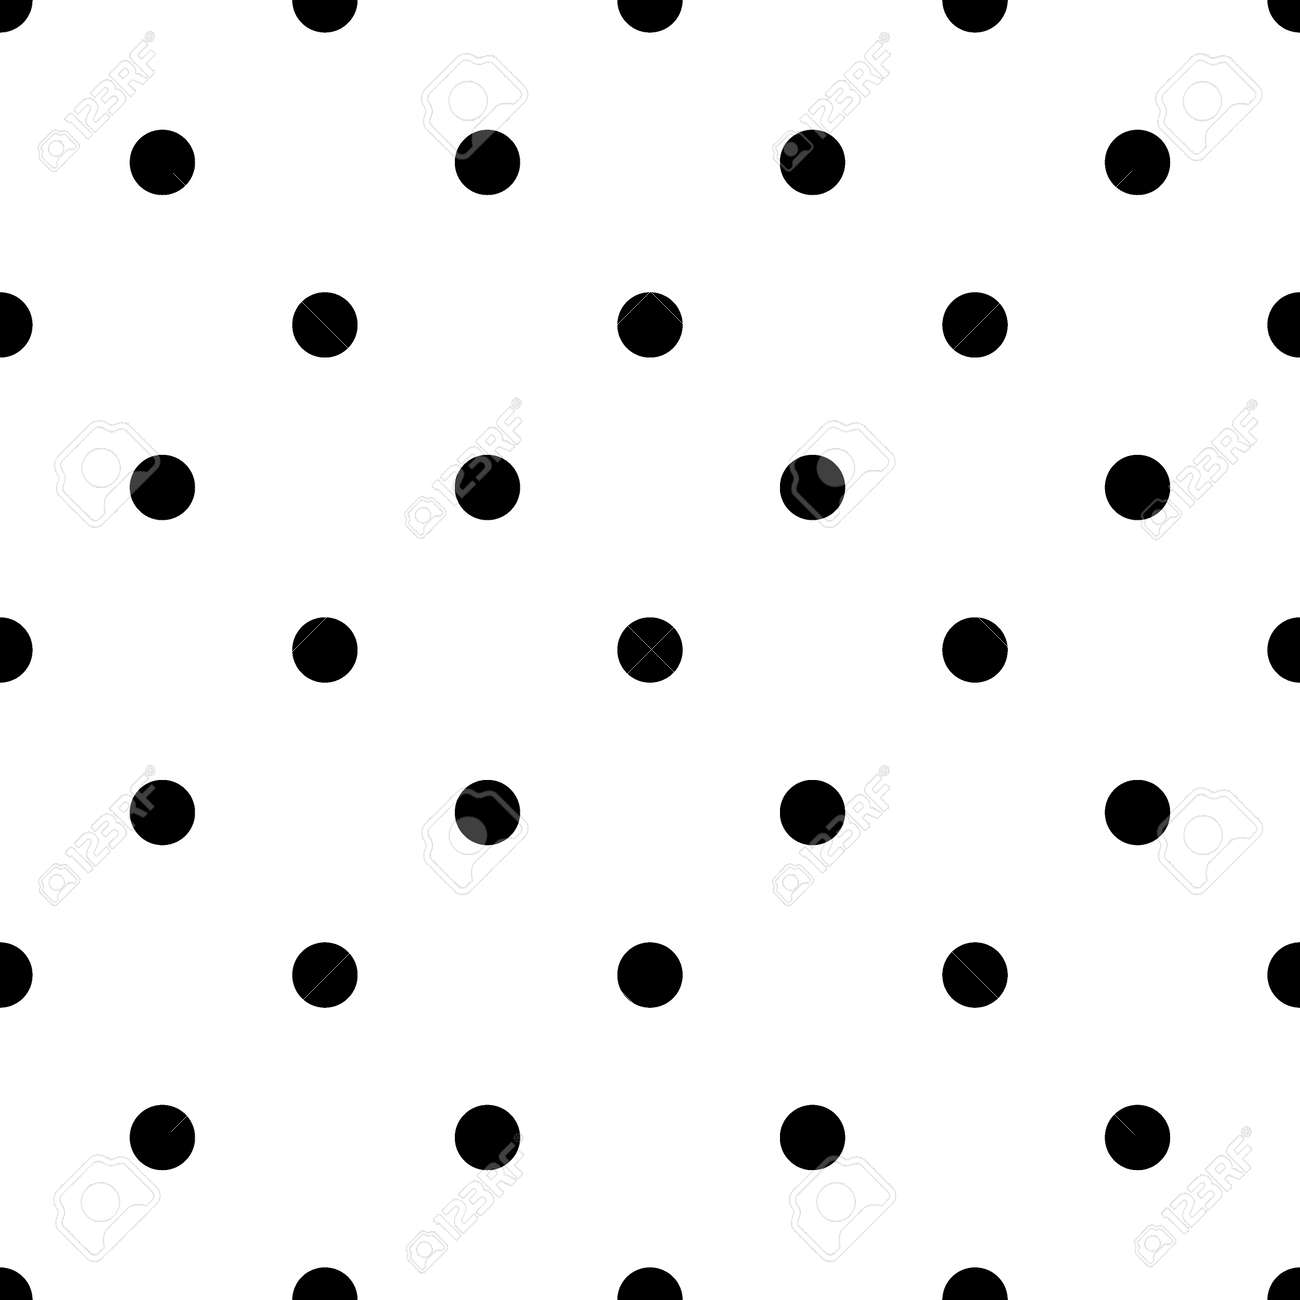 small polka dot seamless pattern abstract fashion black and stock